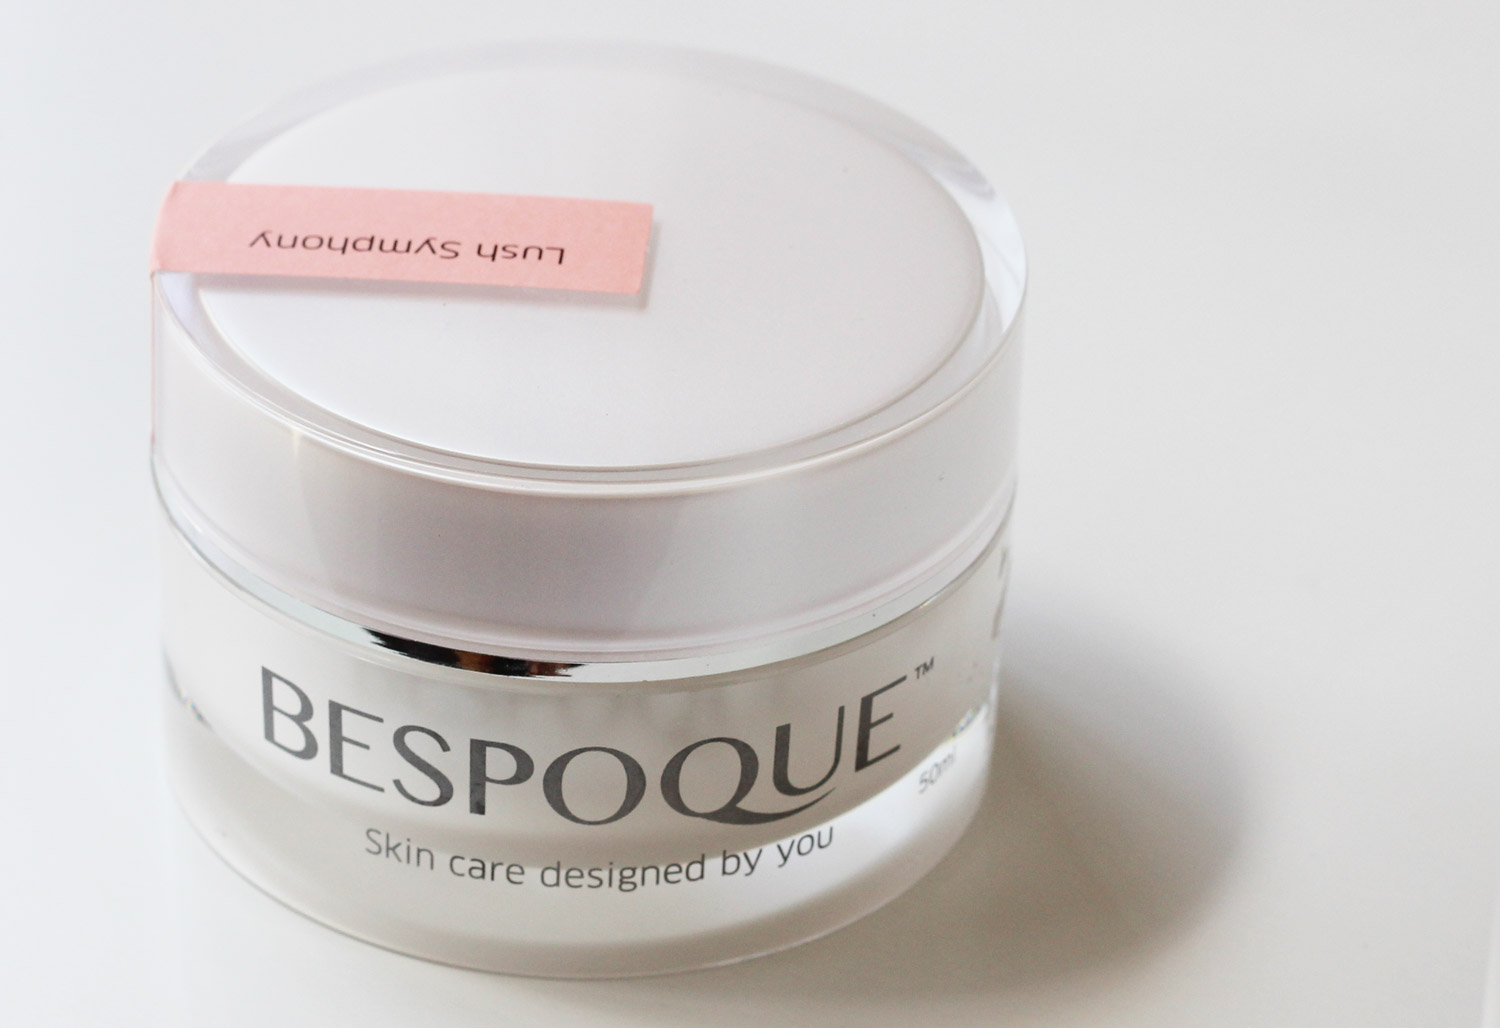 Bespoque Customise Own Skin Care Review